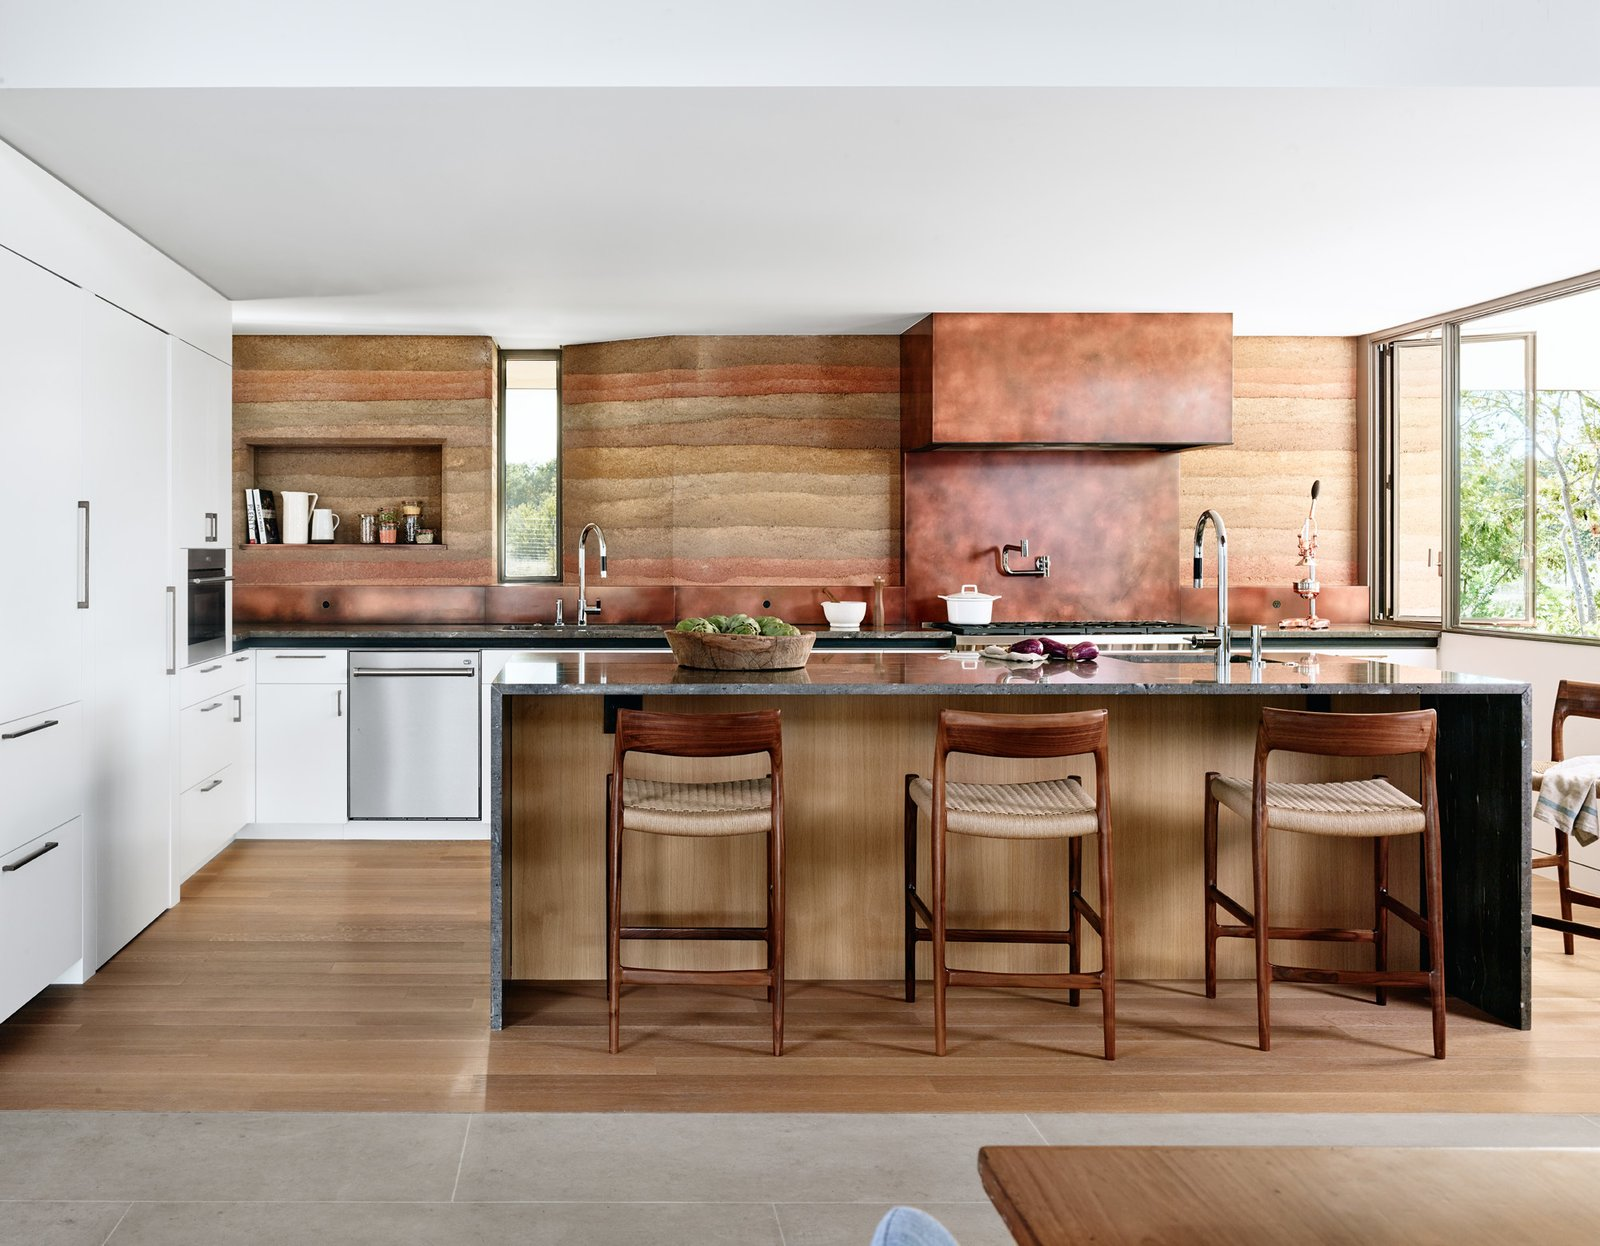 Jobe Corral Architects River Ranch house kitchen with rammed-earth wall and copper hood vent.